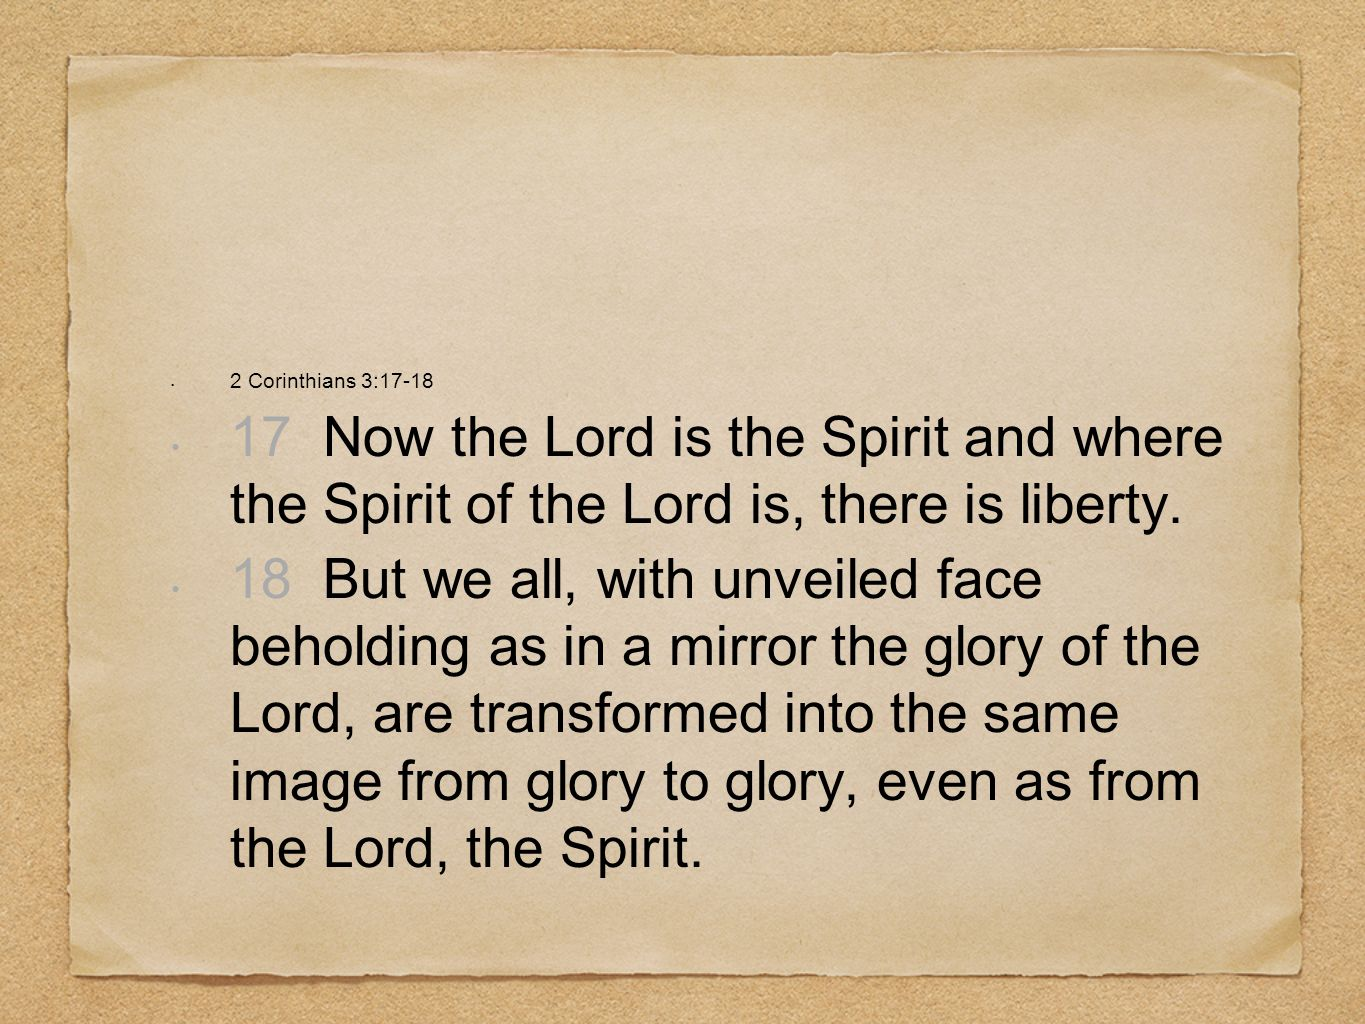 2 Corinthians 3:17-18 17 Now the Lord is the Spirit and where the Spirit of the Lord is, there is liberty.